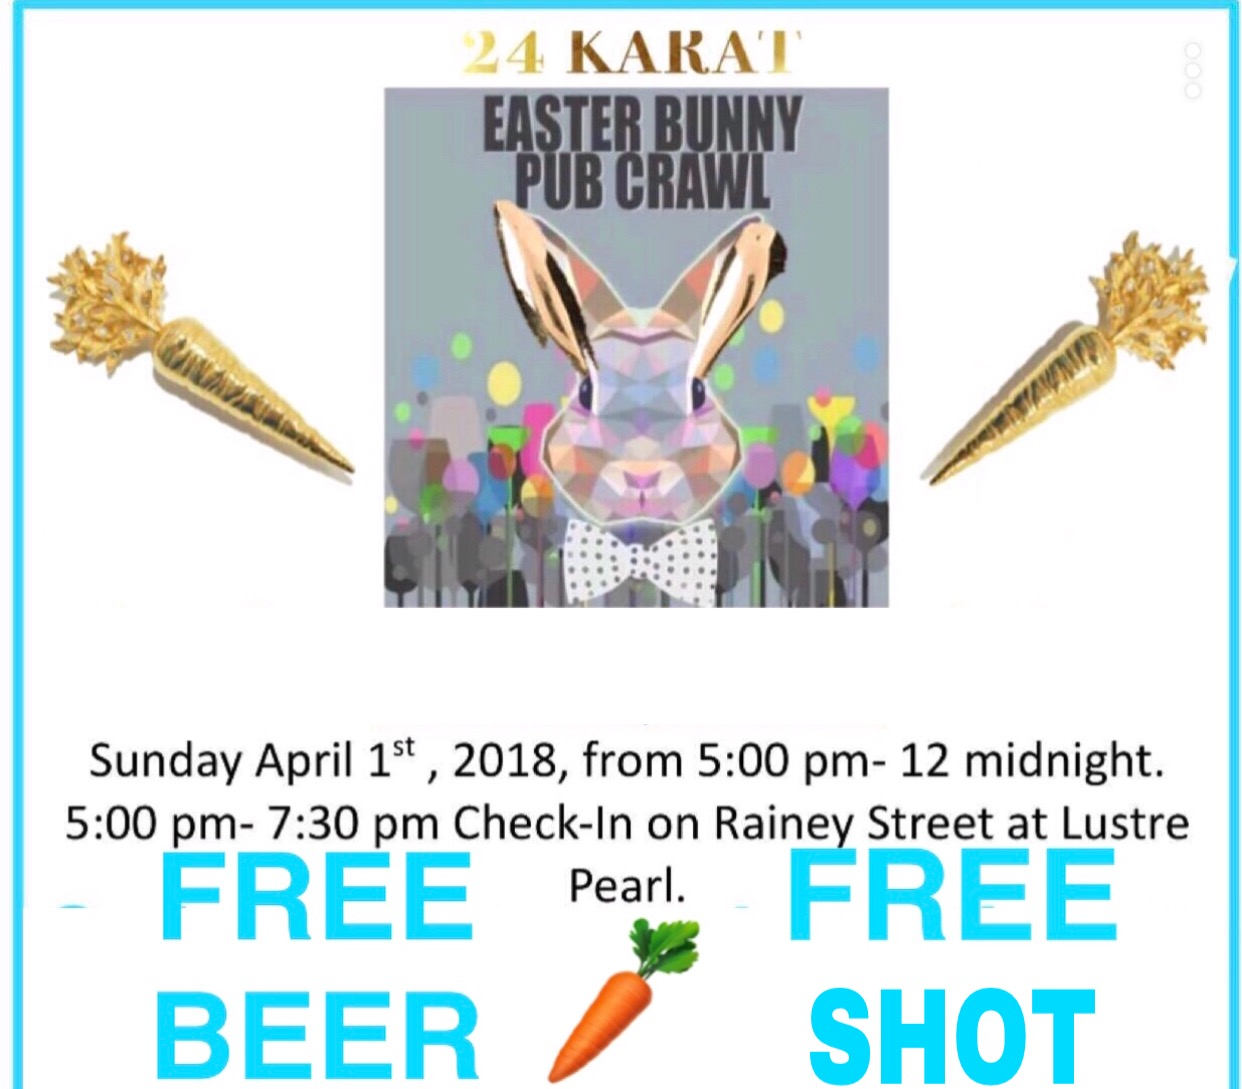 24 Karat Easter Bunny Bar Crawl